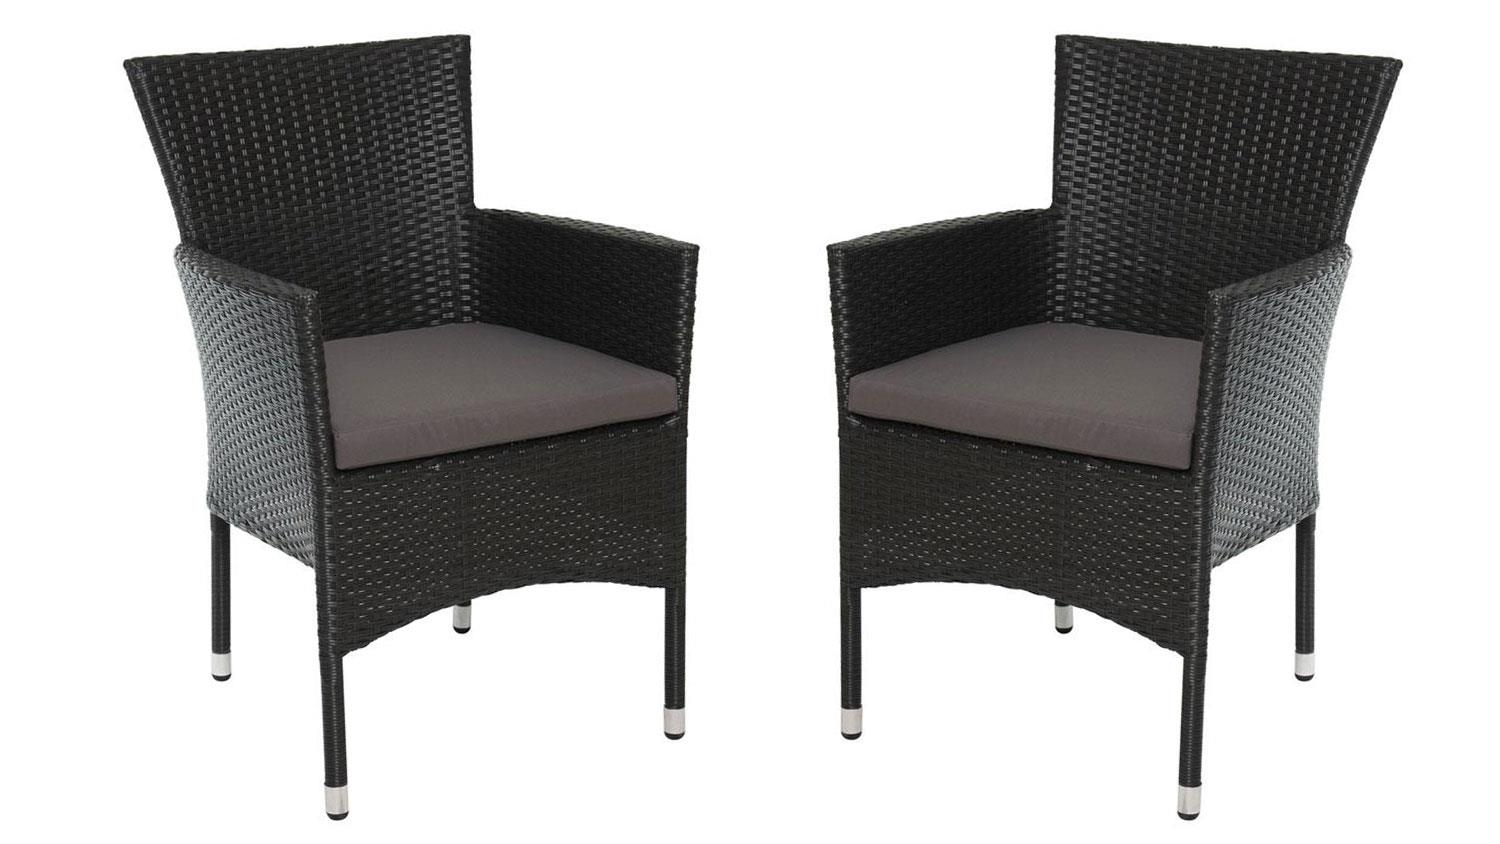 gartenstuhl 2er set polyrattan sessel in schwarz mit kissen. Black Bedroom Furniture Sets. Home Design Ideas